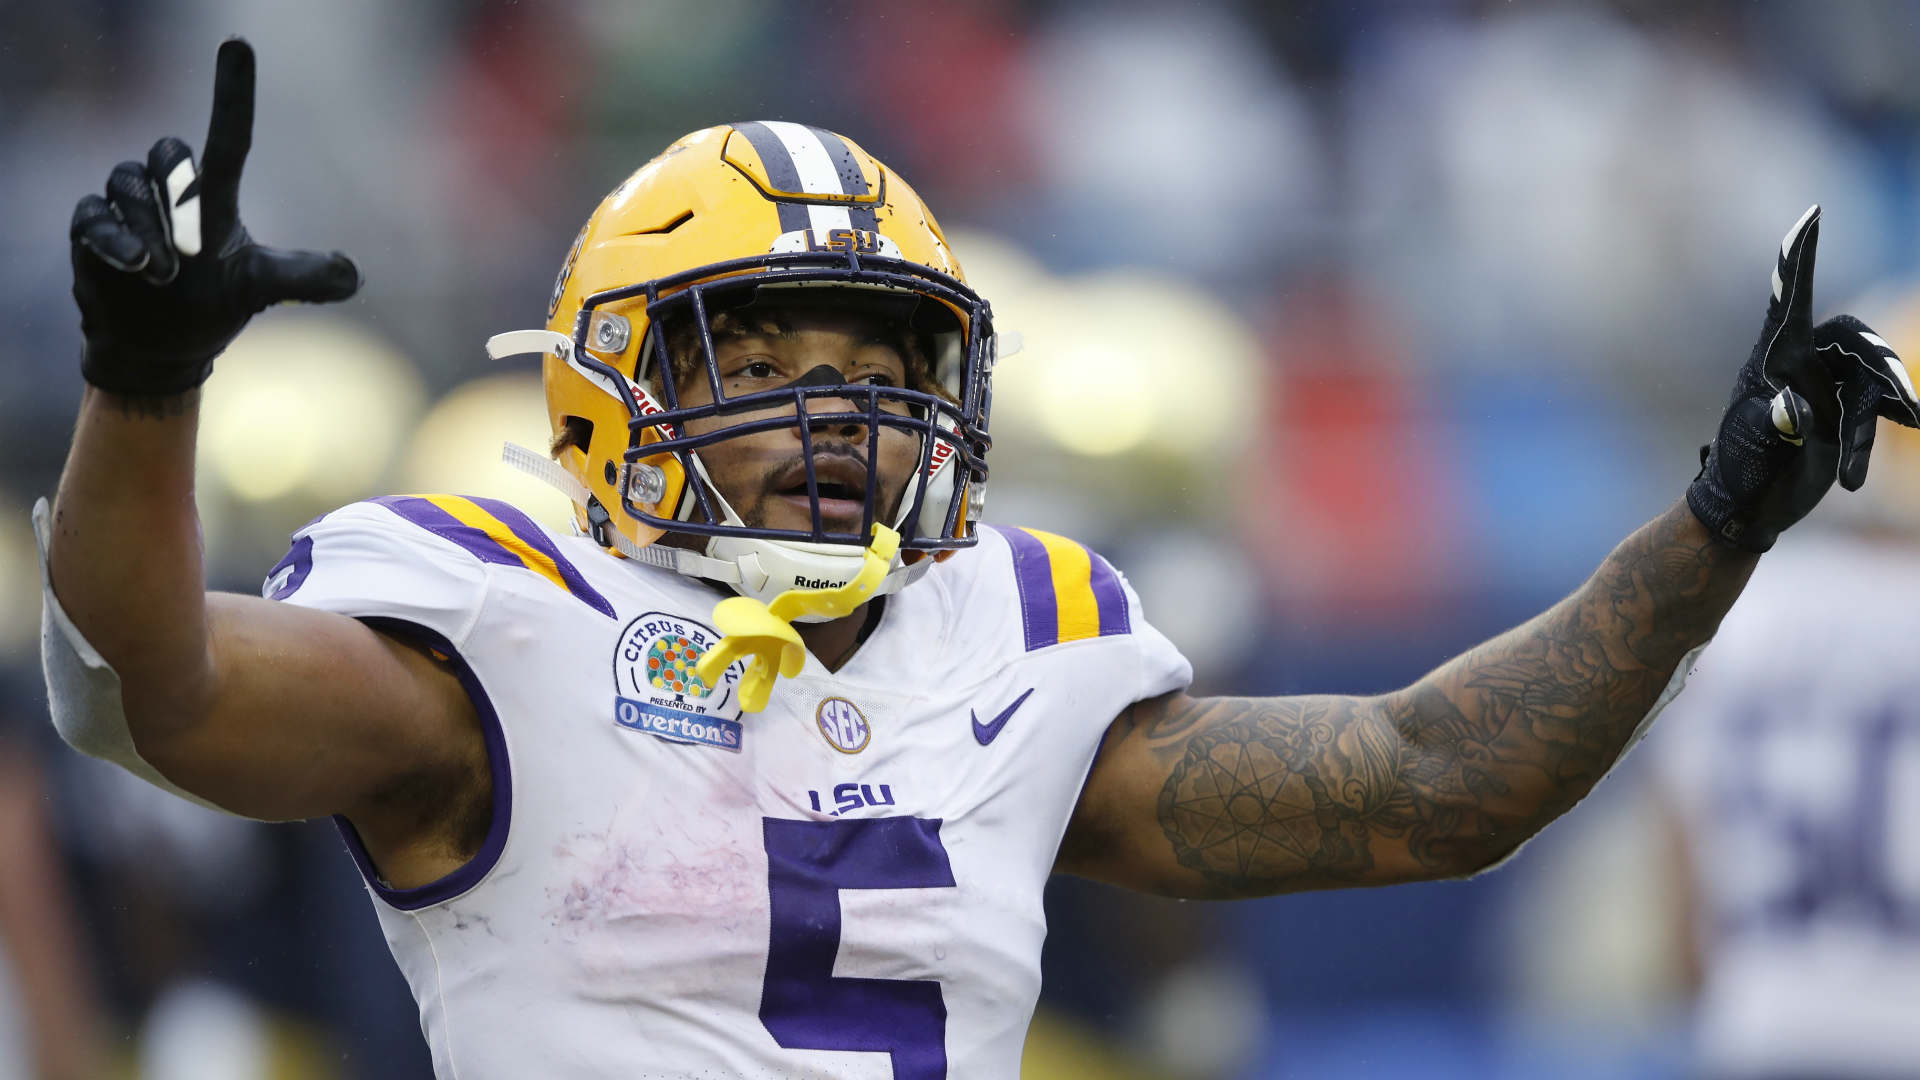 Running back Derrius Guice told NFL teams to draft him or he would give their defenses hell.